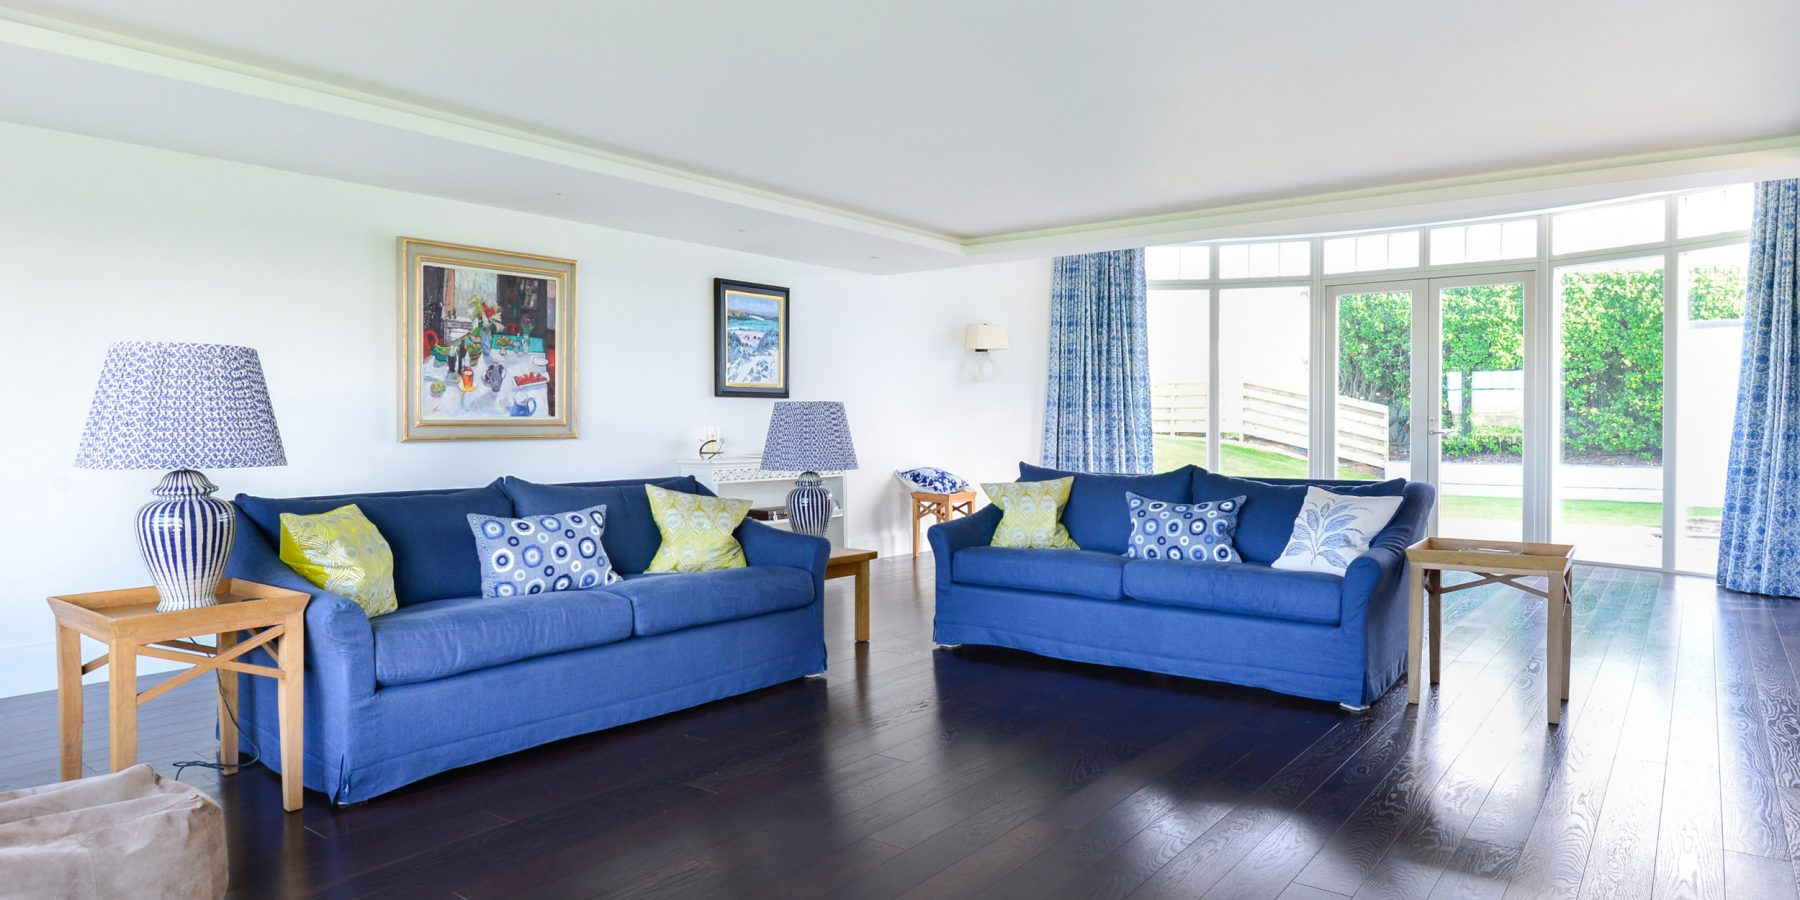 Thumbnail of http://Blue%20sofas%20in%20sitting%20room%20with%20dark%20wood%20floor